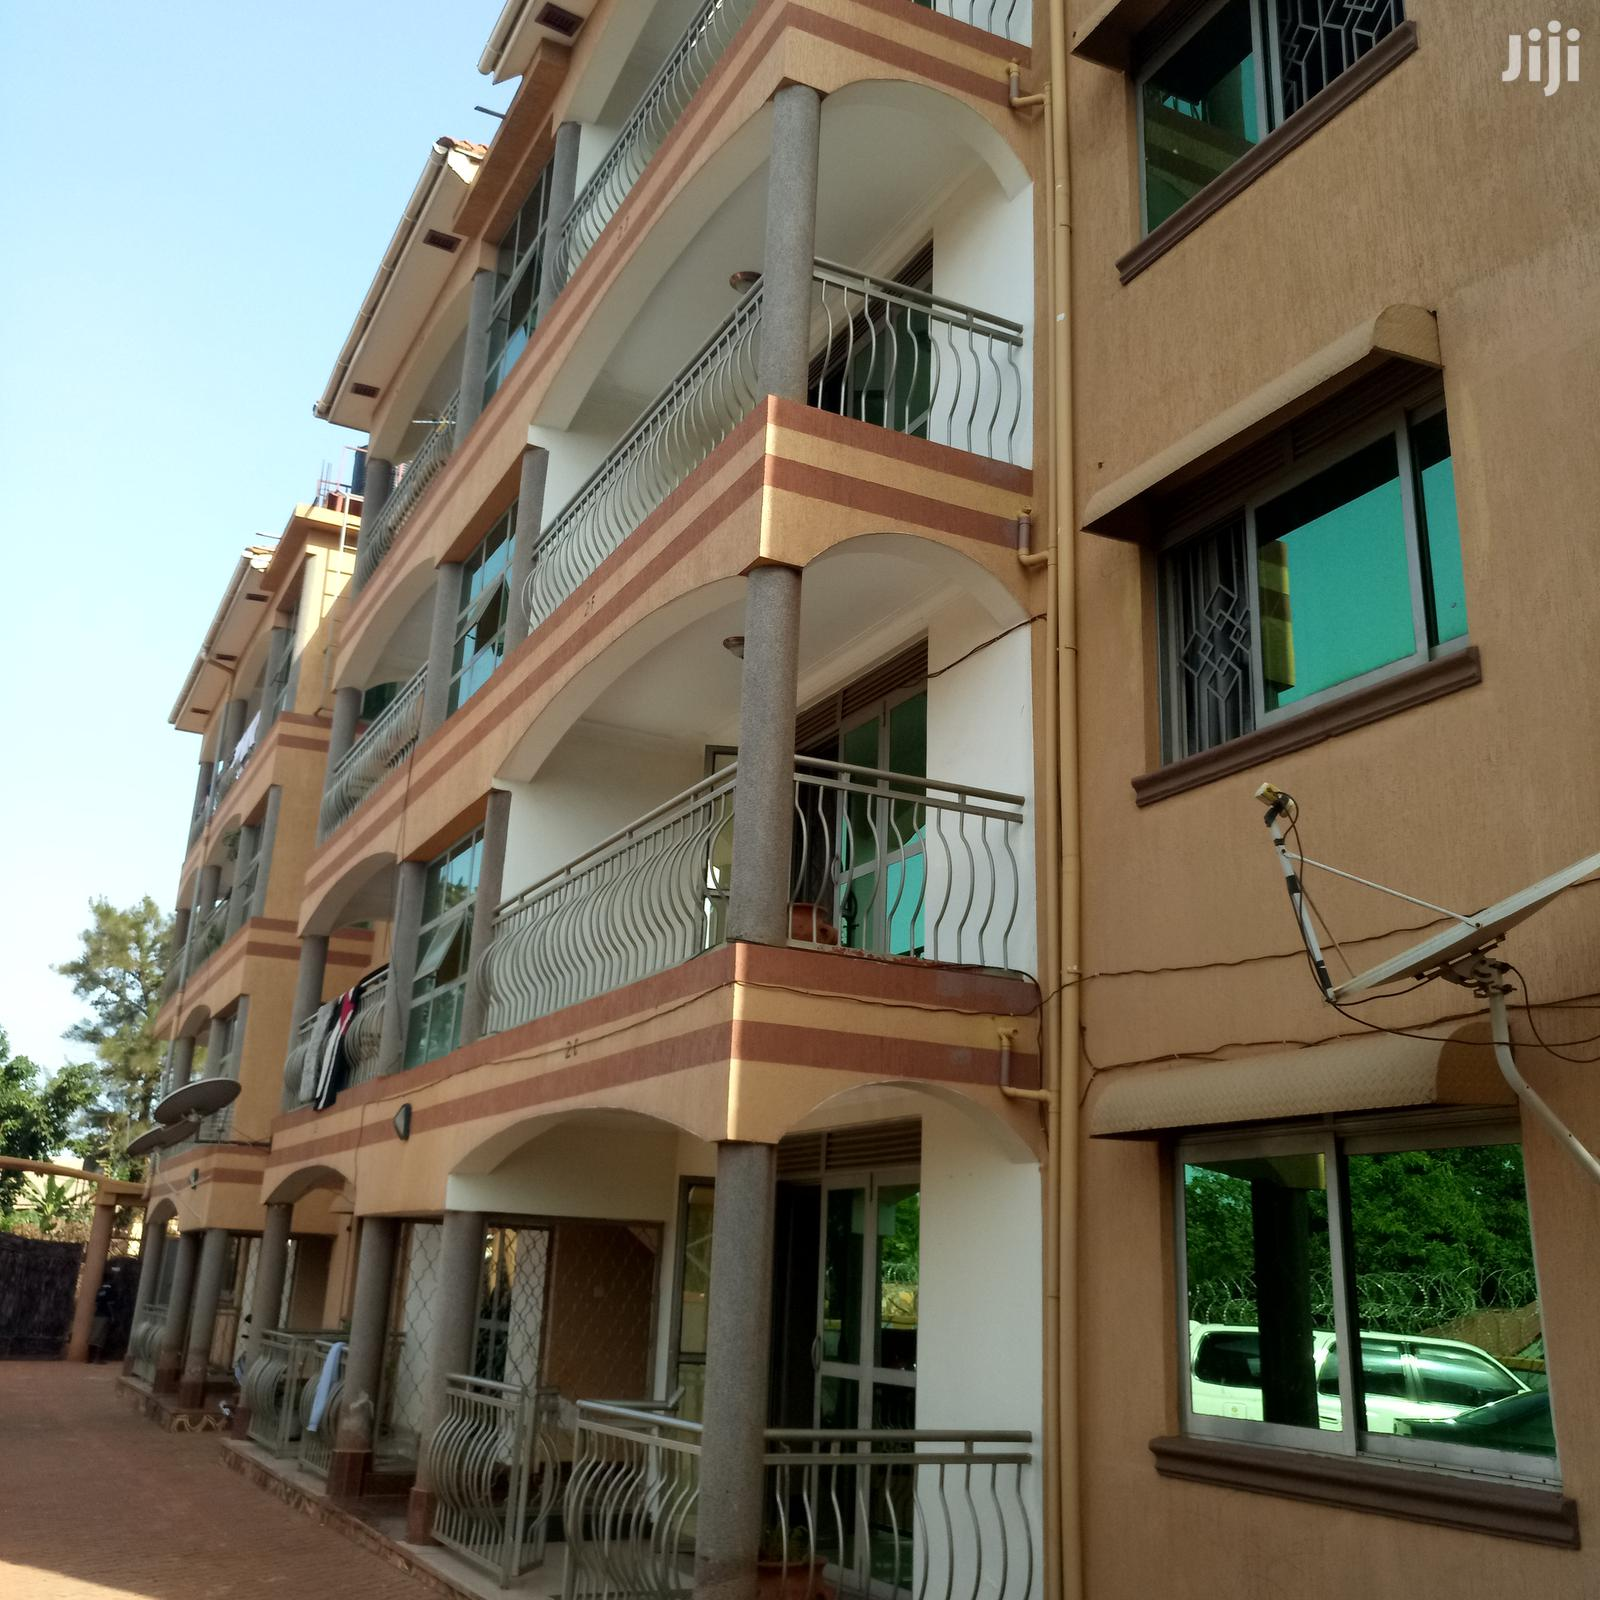 Archive Two Bedroom Apartment In Ntinda For Rent In Kampala Houses Apartments For Rent Saliphina Propertiesv Jiji Ug